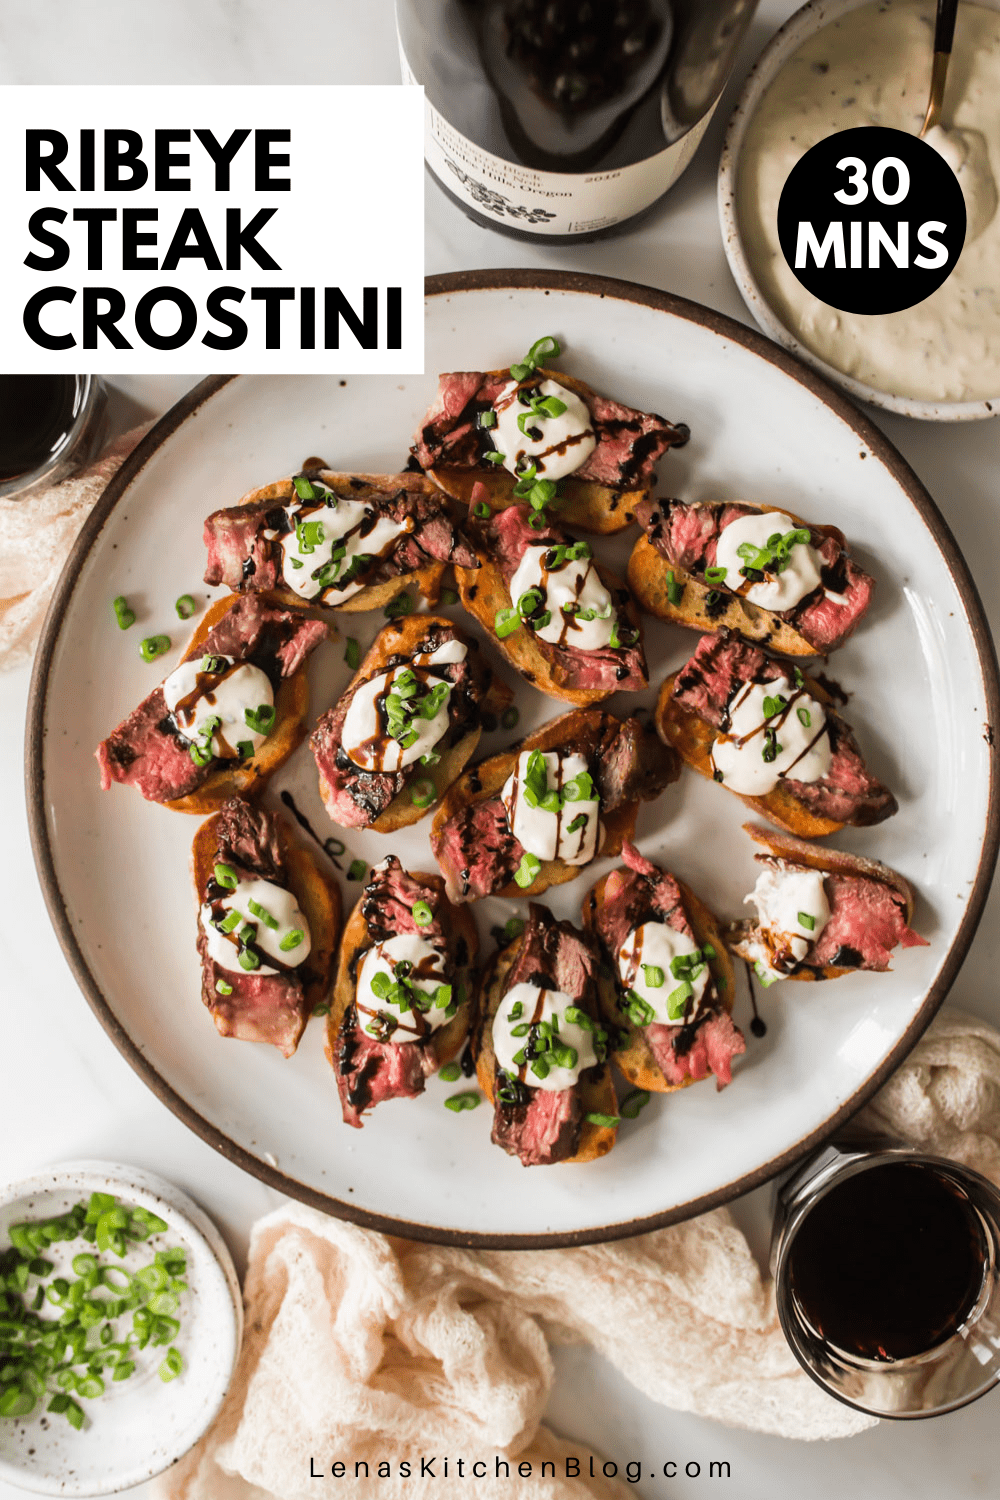 White plate with crostini topped with sliced steak, white cheese sauce, and balsamic